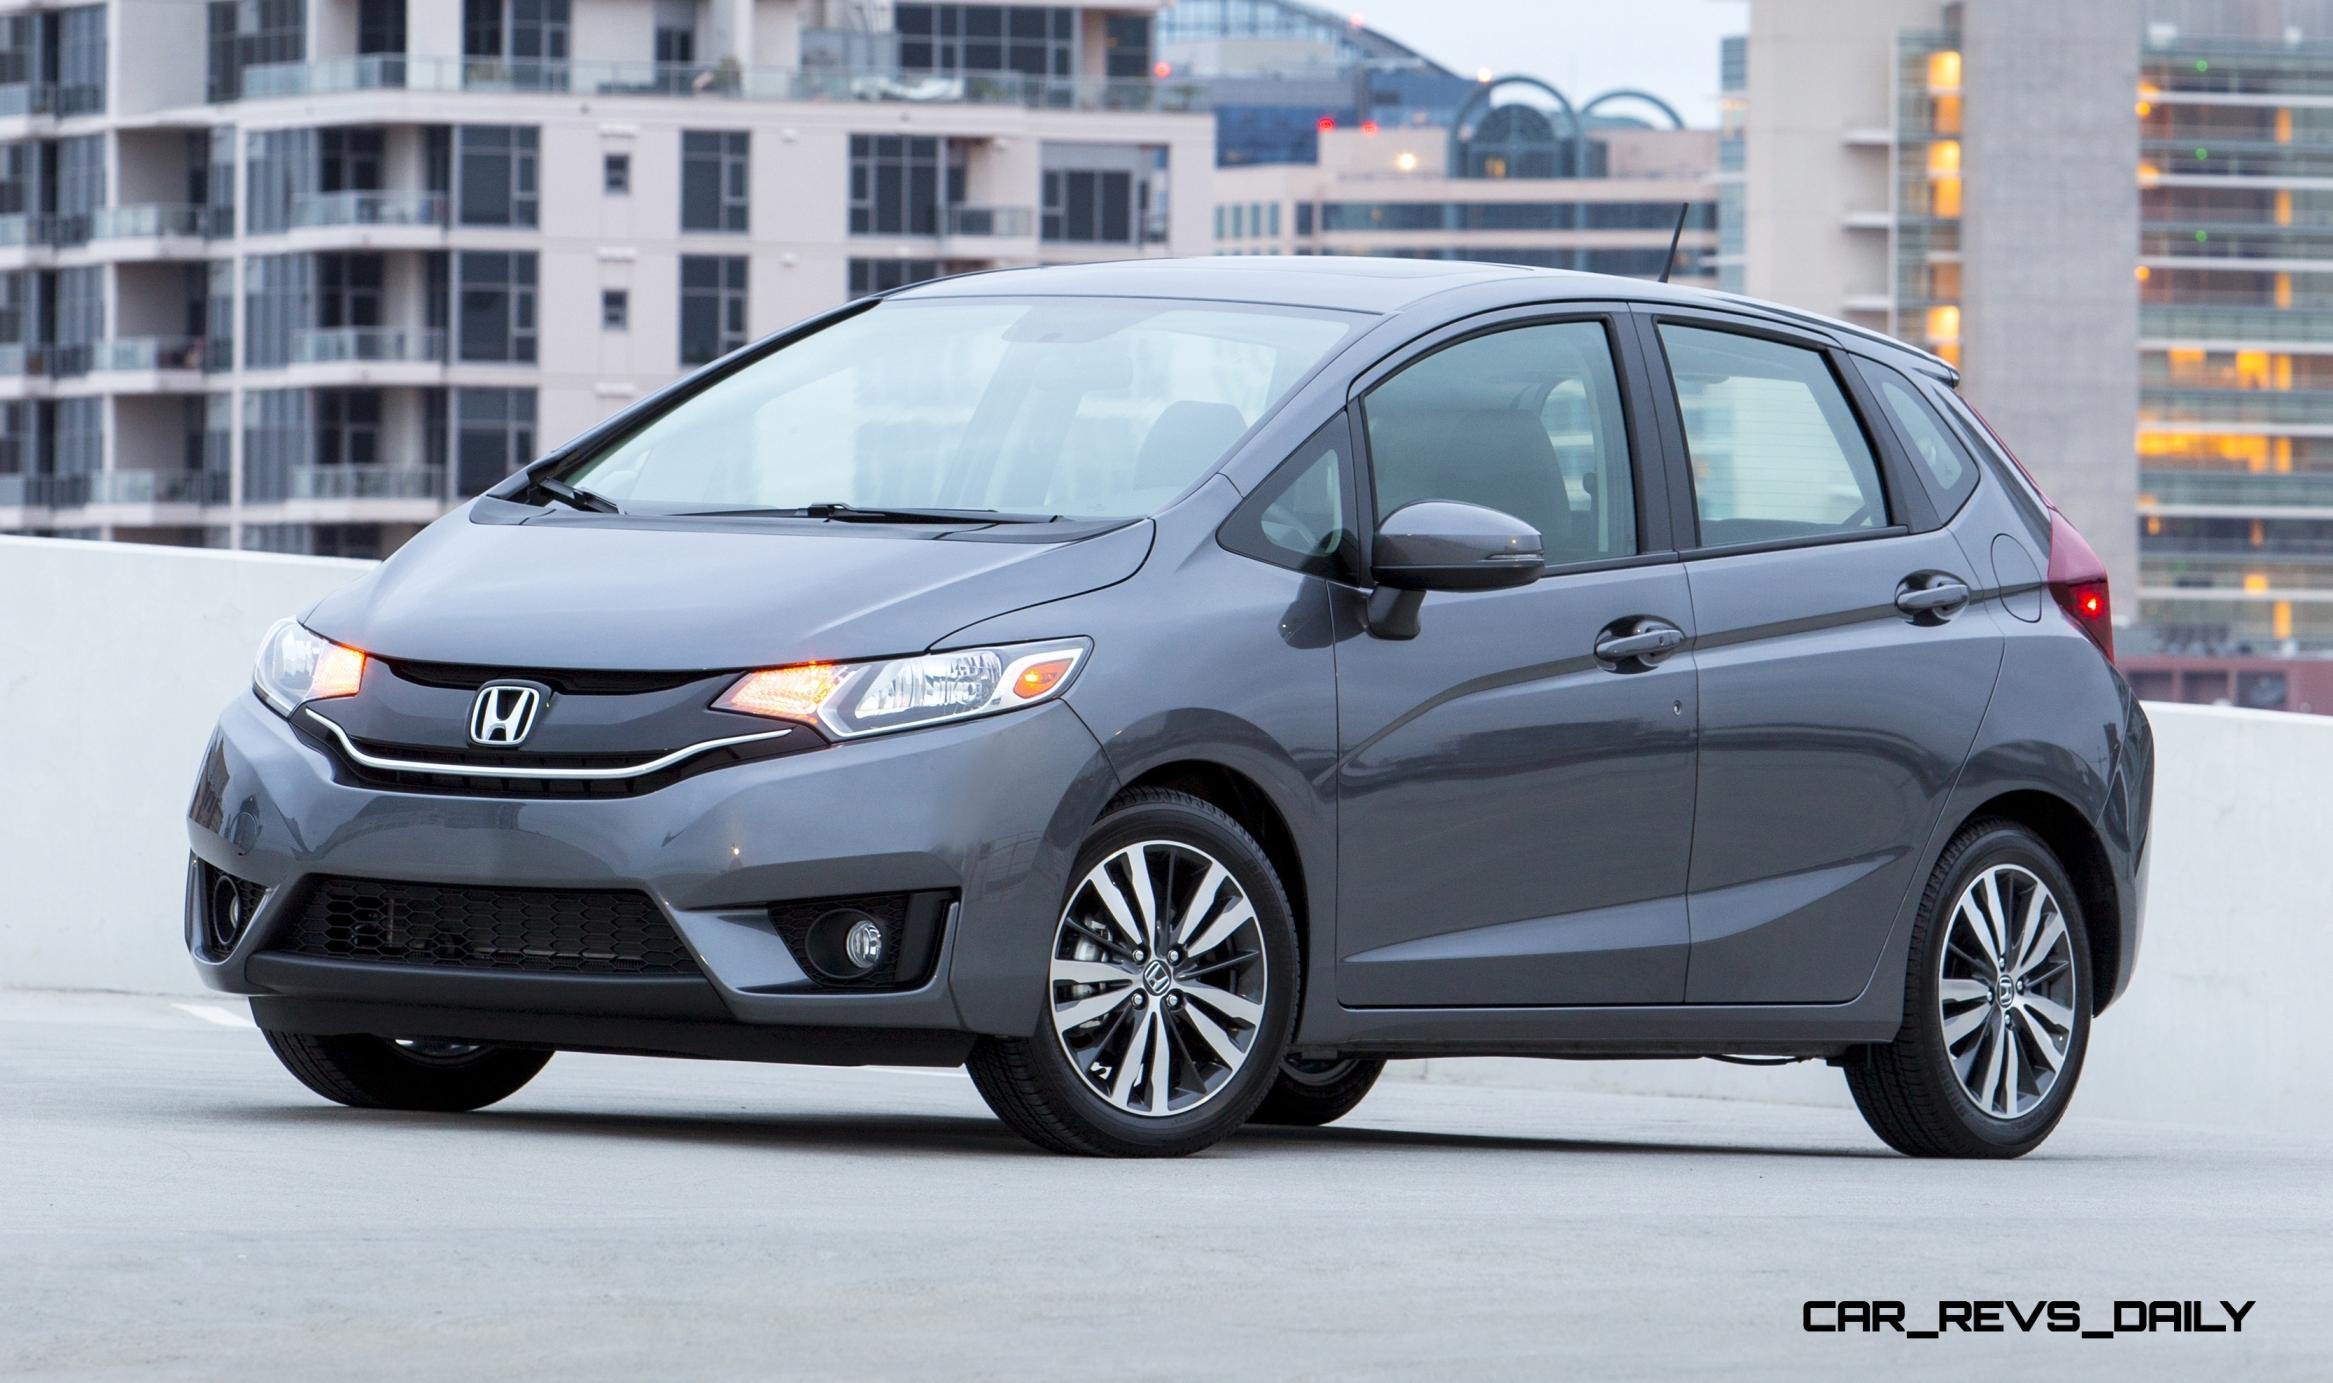 2015 Honda Fit Buyers Guide And Pricing Cute And Edgy New